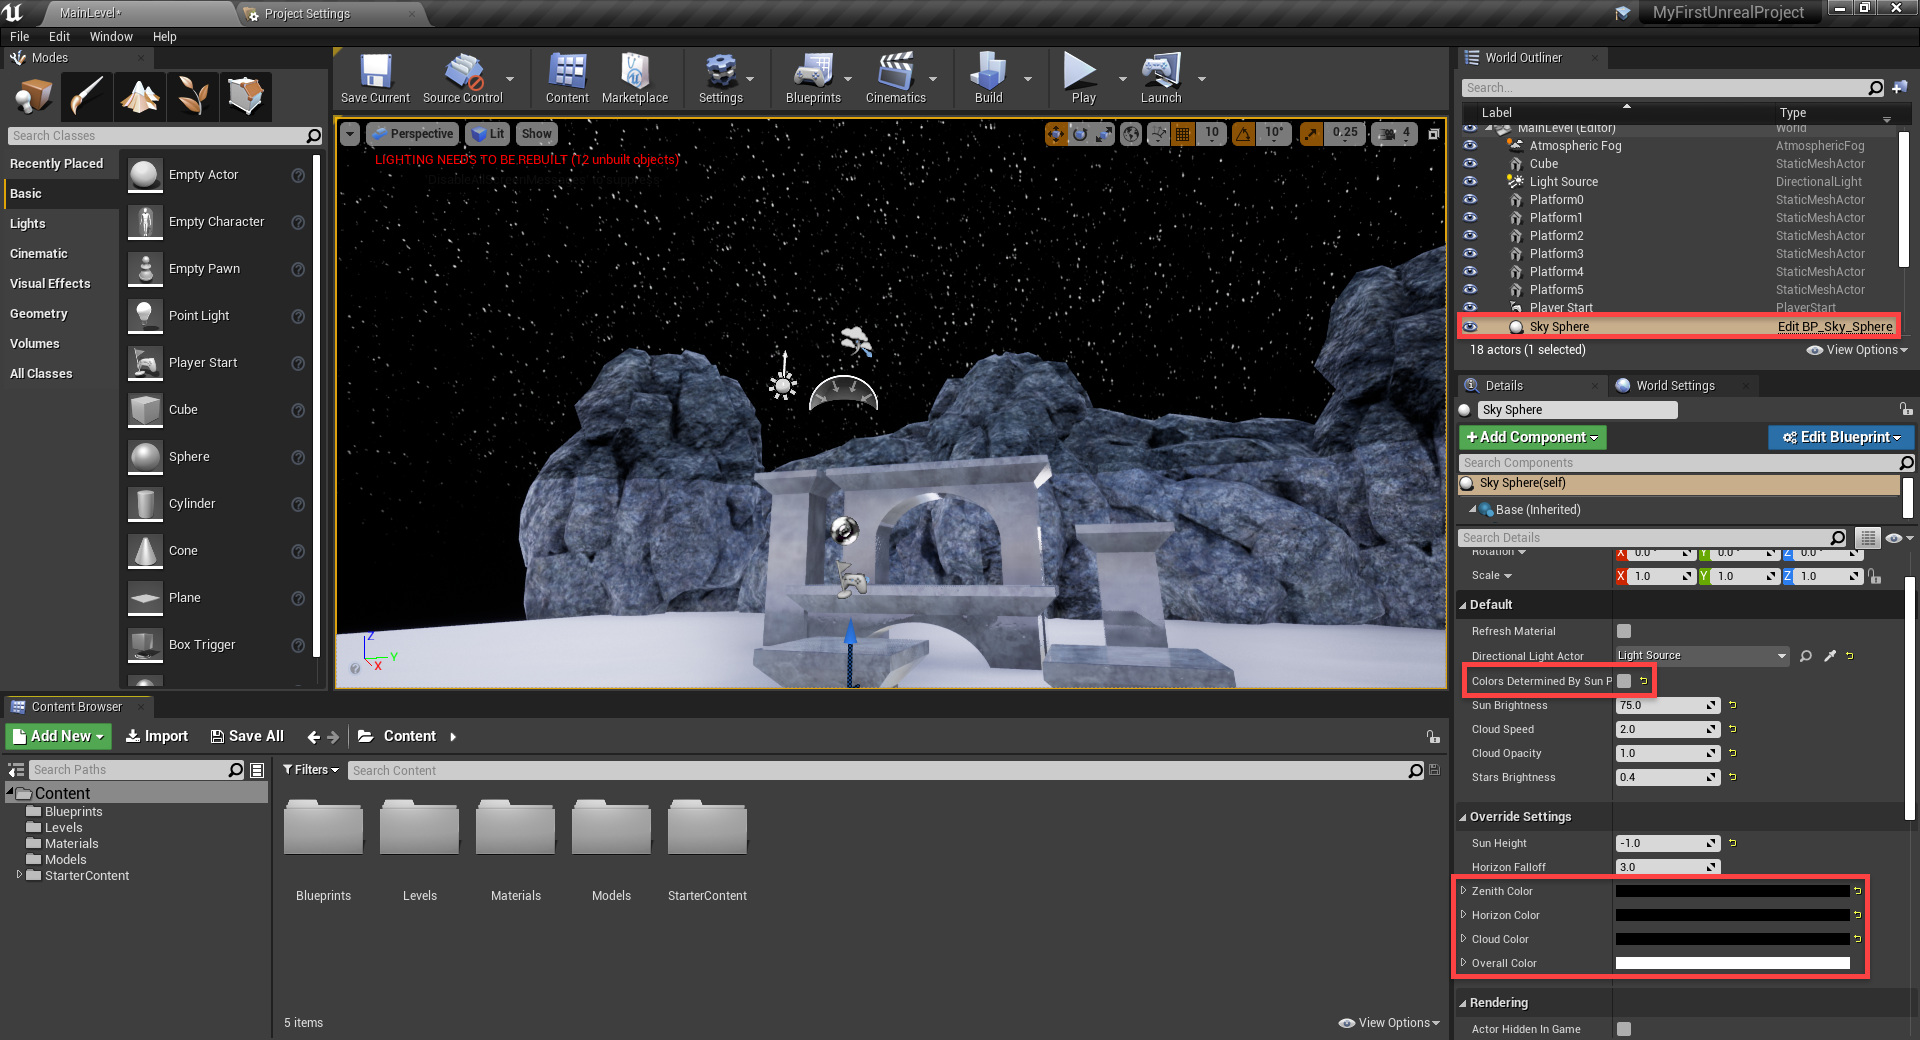 Unreal Engine with starry night sky field added